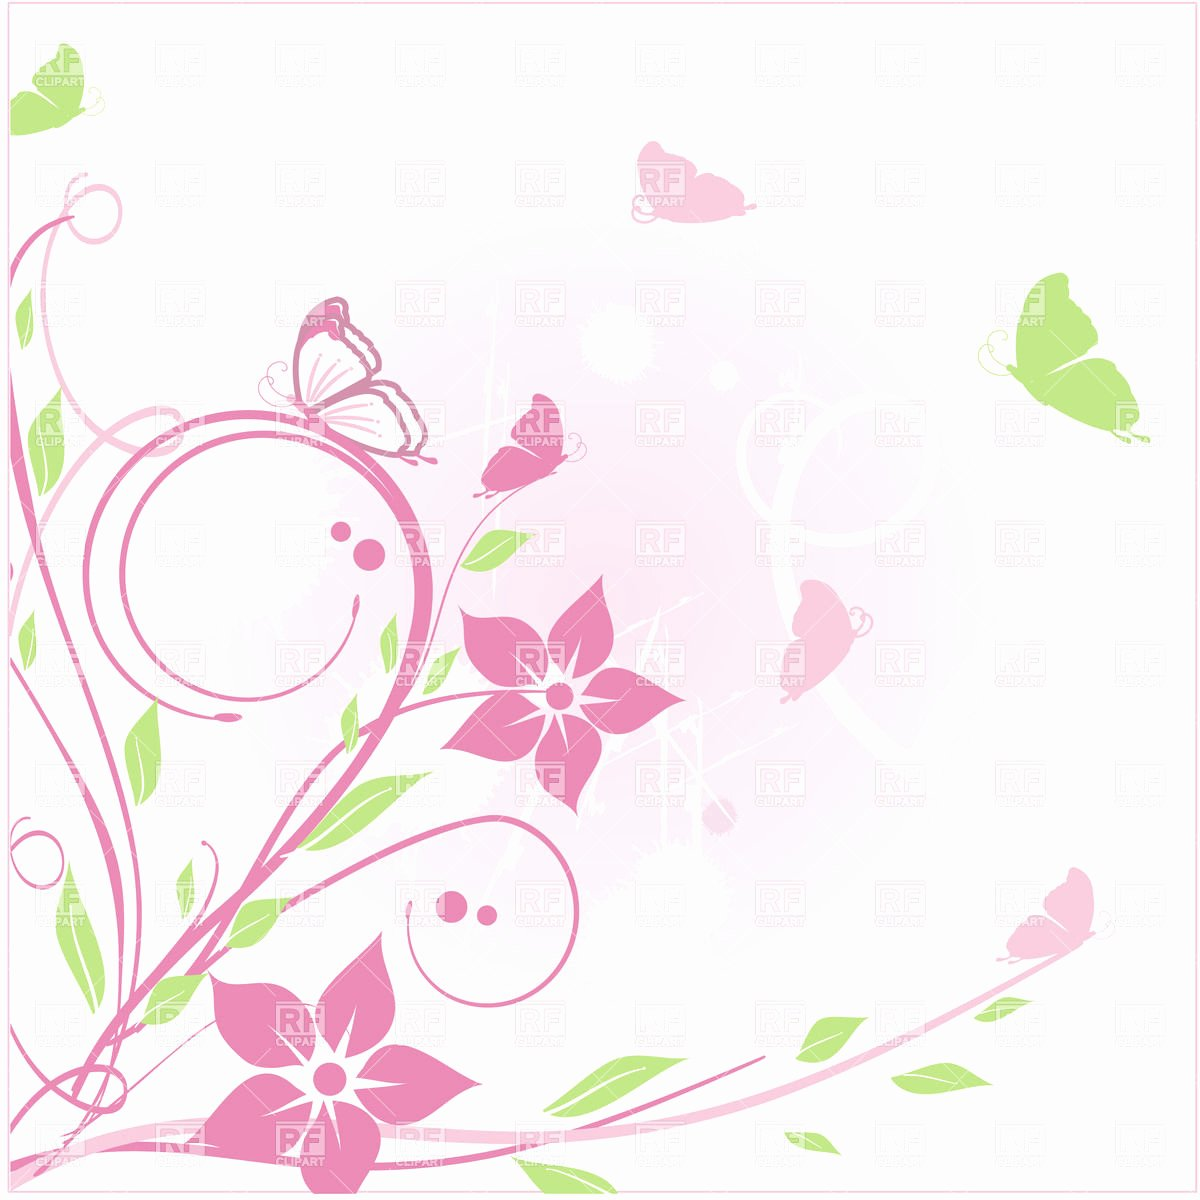 Flower Background Design Images Beautiful Simple Floral Background with Curly Twigs and butterfly